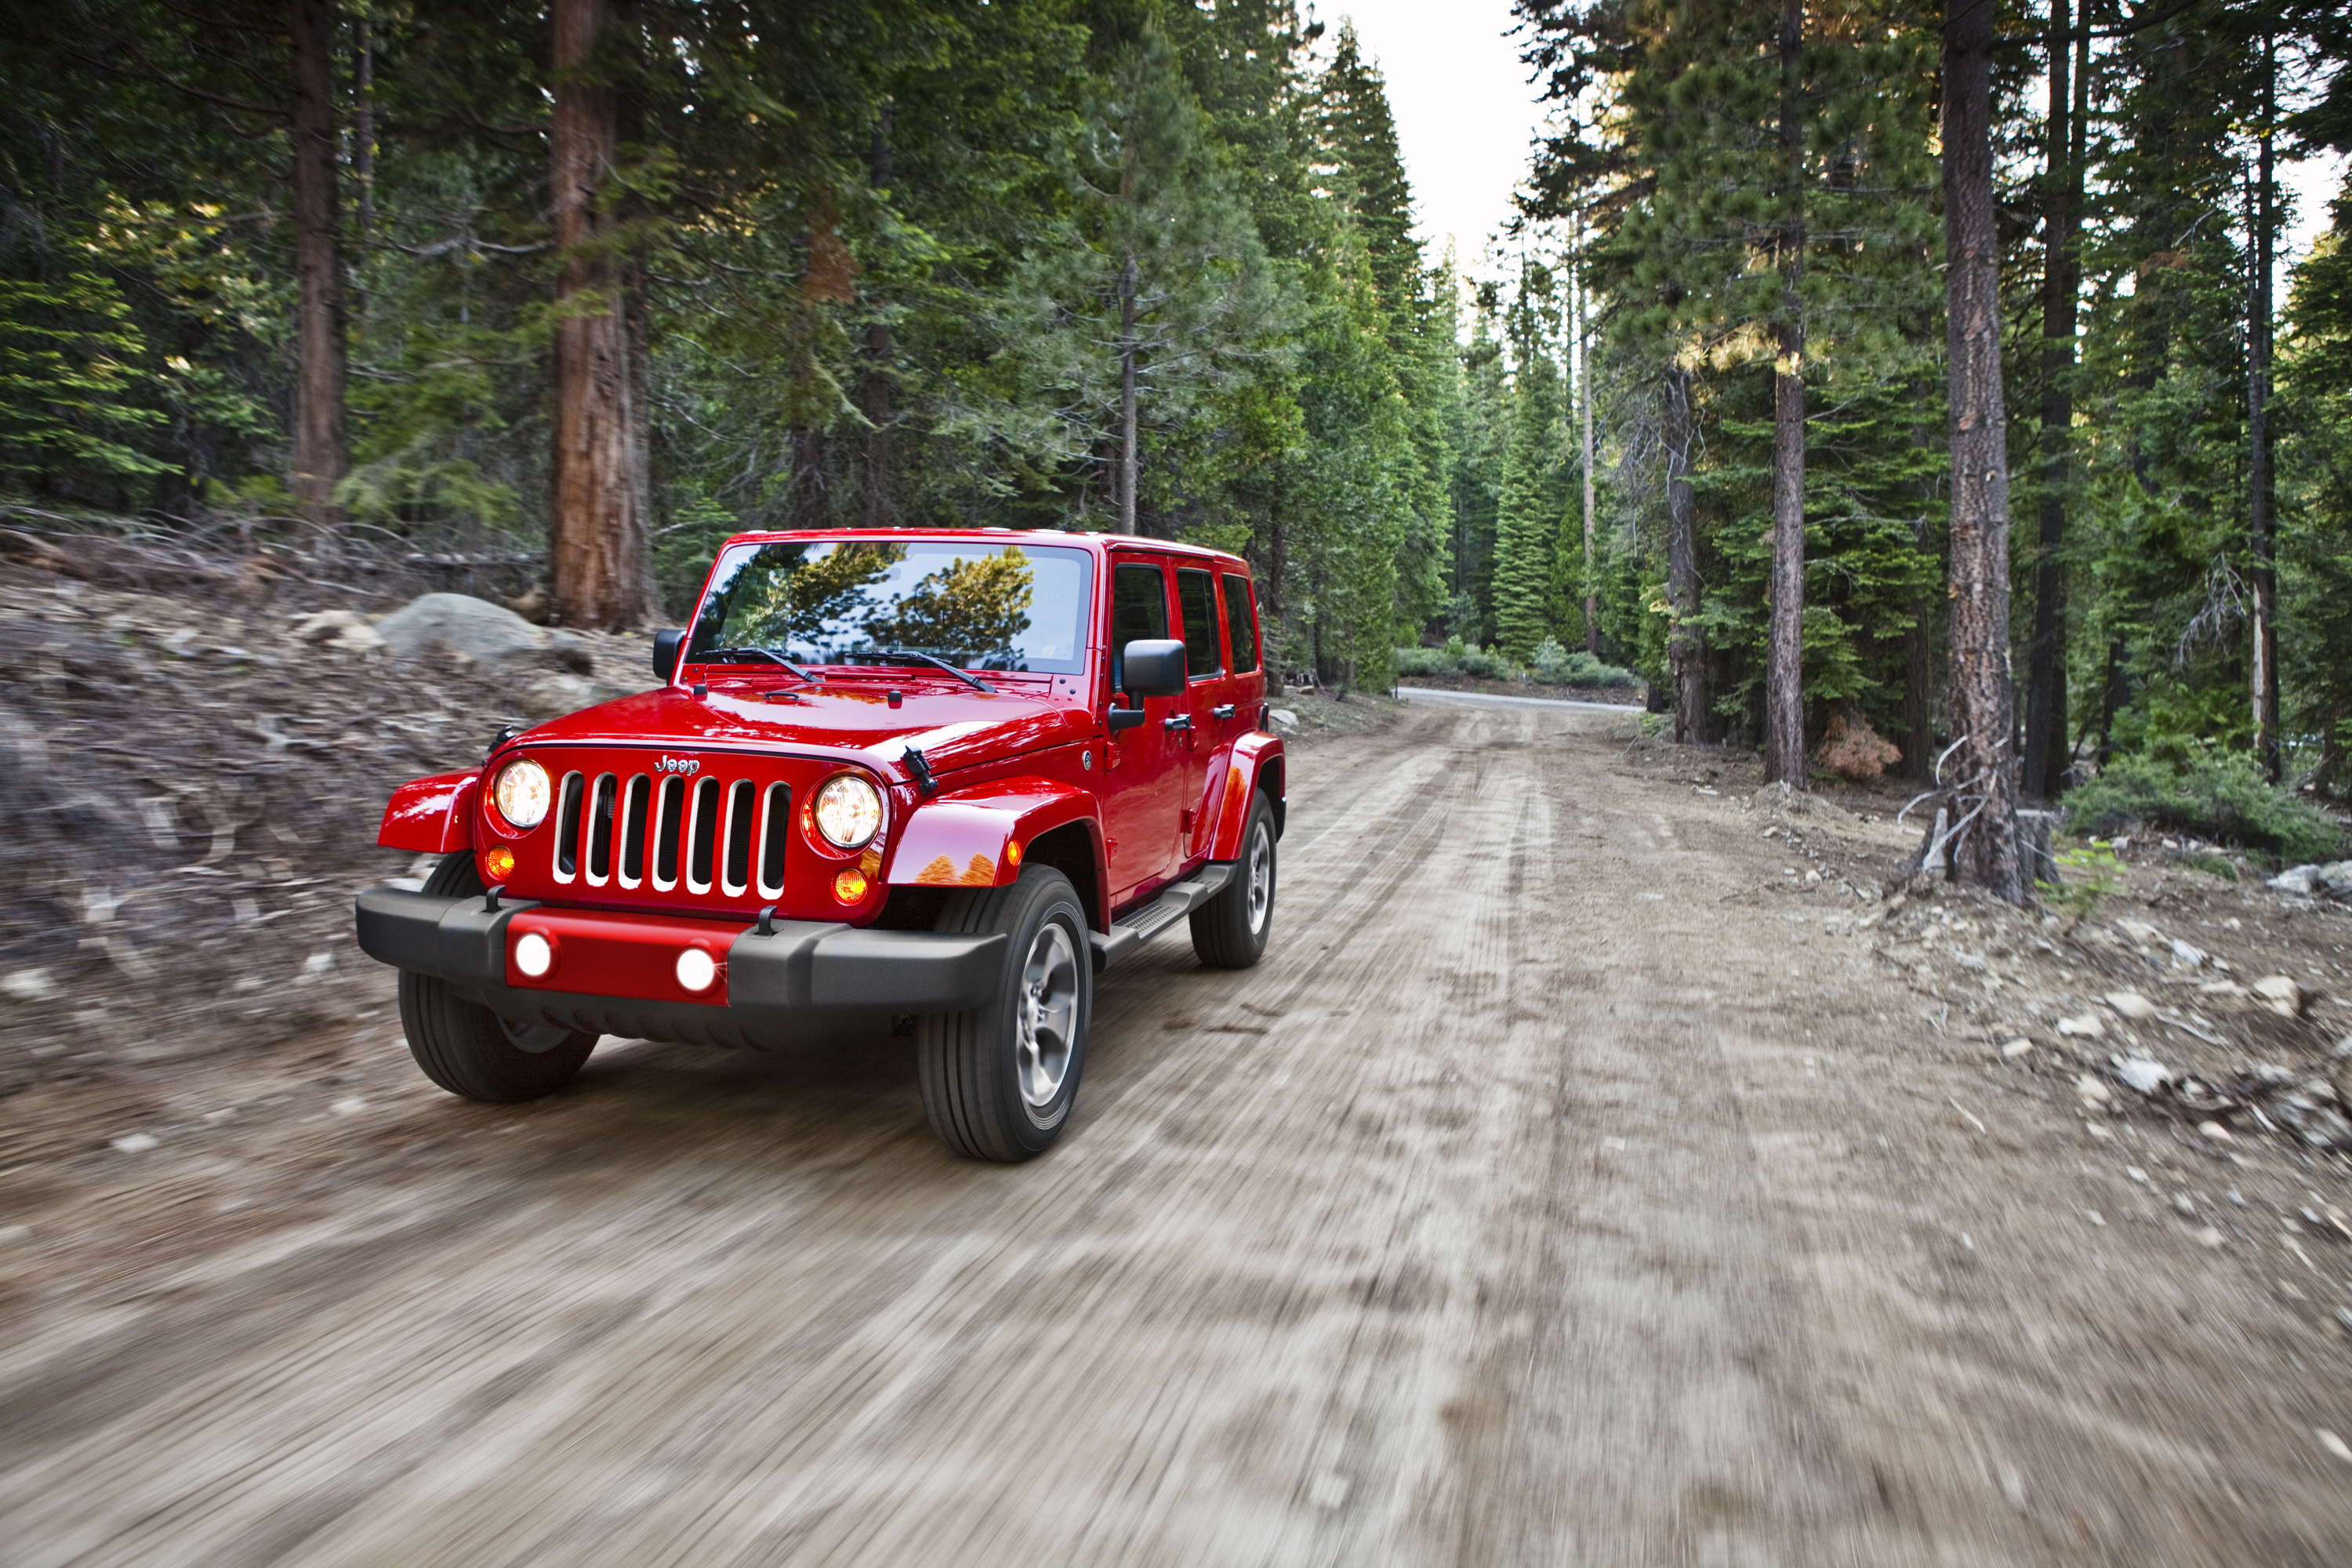 Jeep Trails Find Out The Trails That Are Near You With The Alltrails App